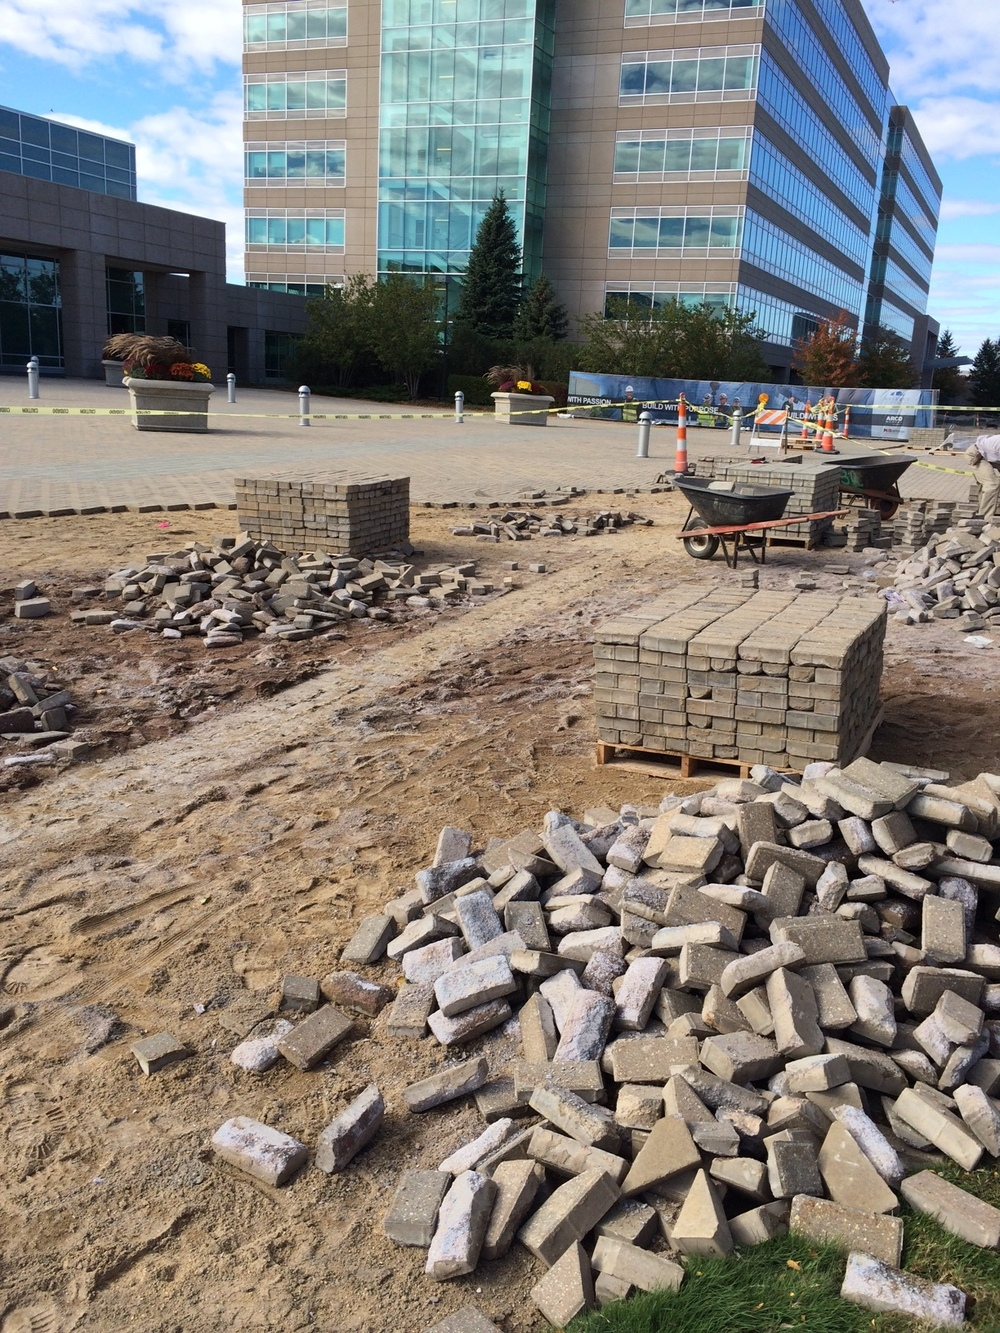 Removal of pavers from plaza for new drive lane